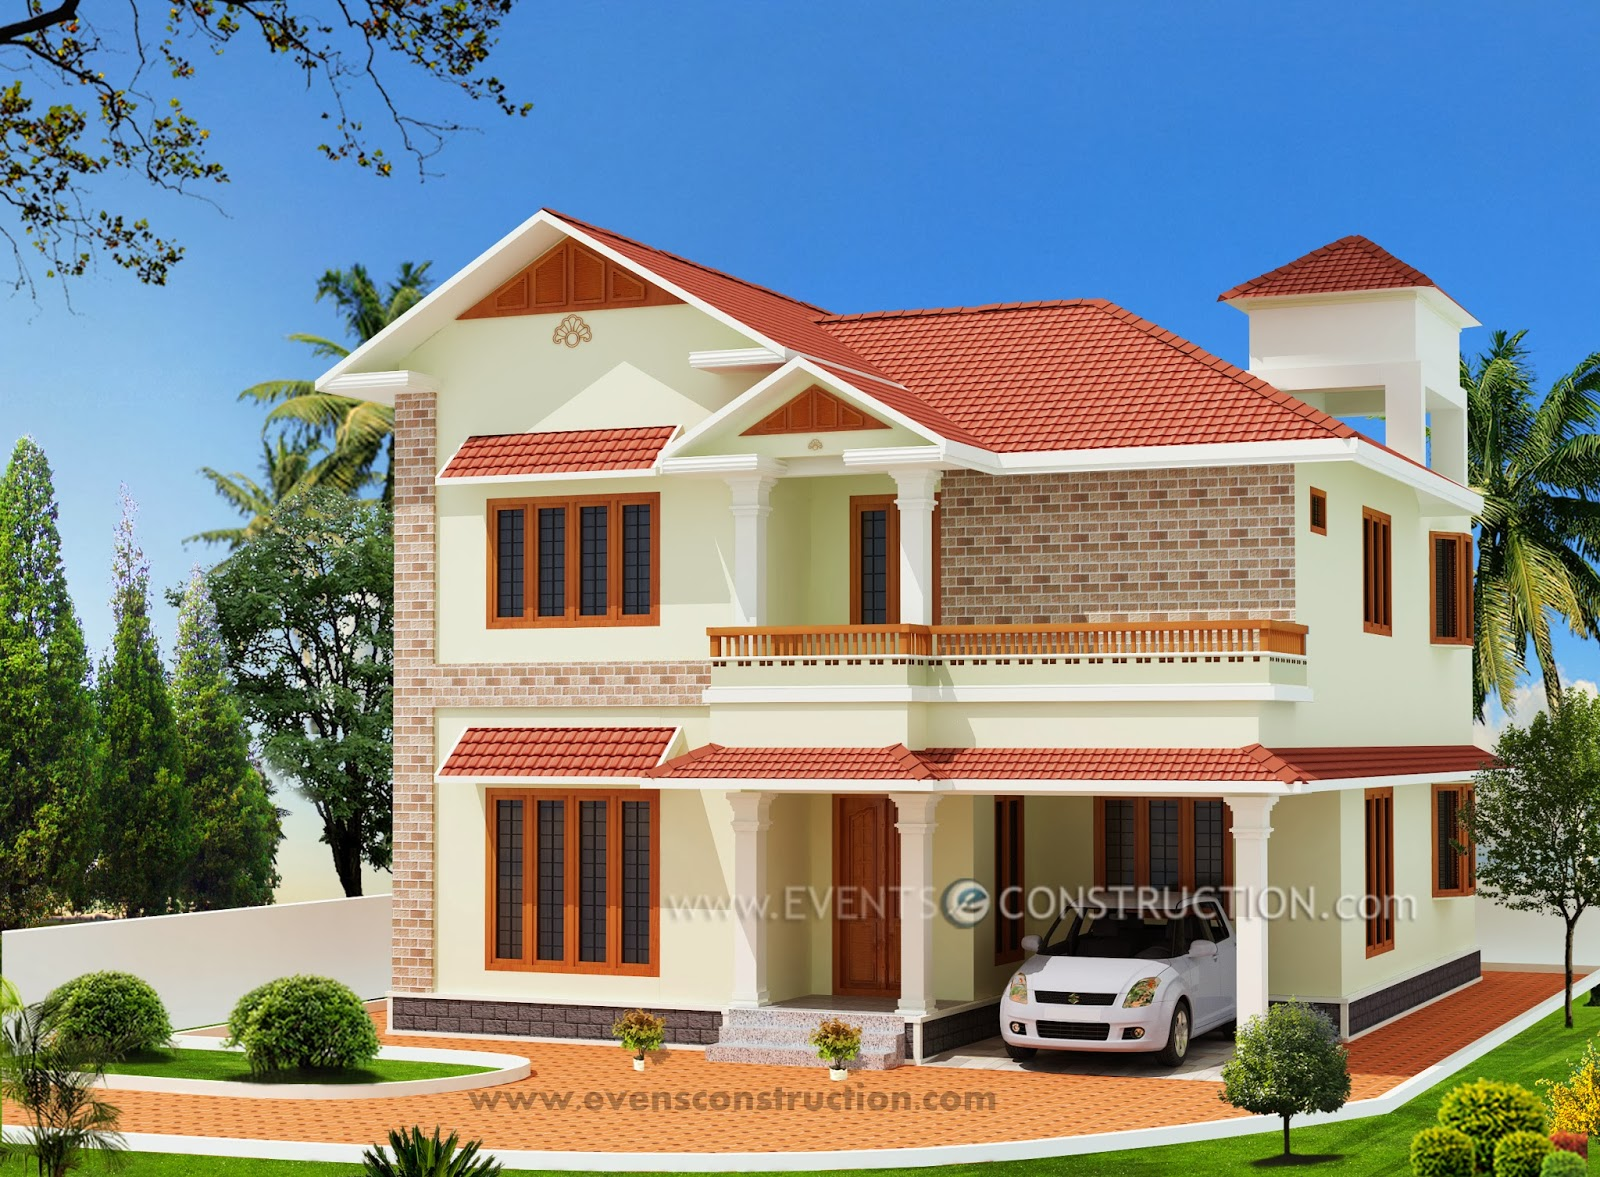 Front Elevation Compound Wall : Compound wall elevation joy studio design gallery best